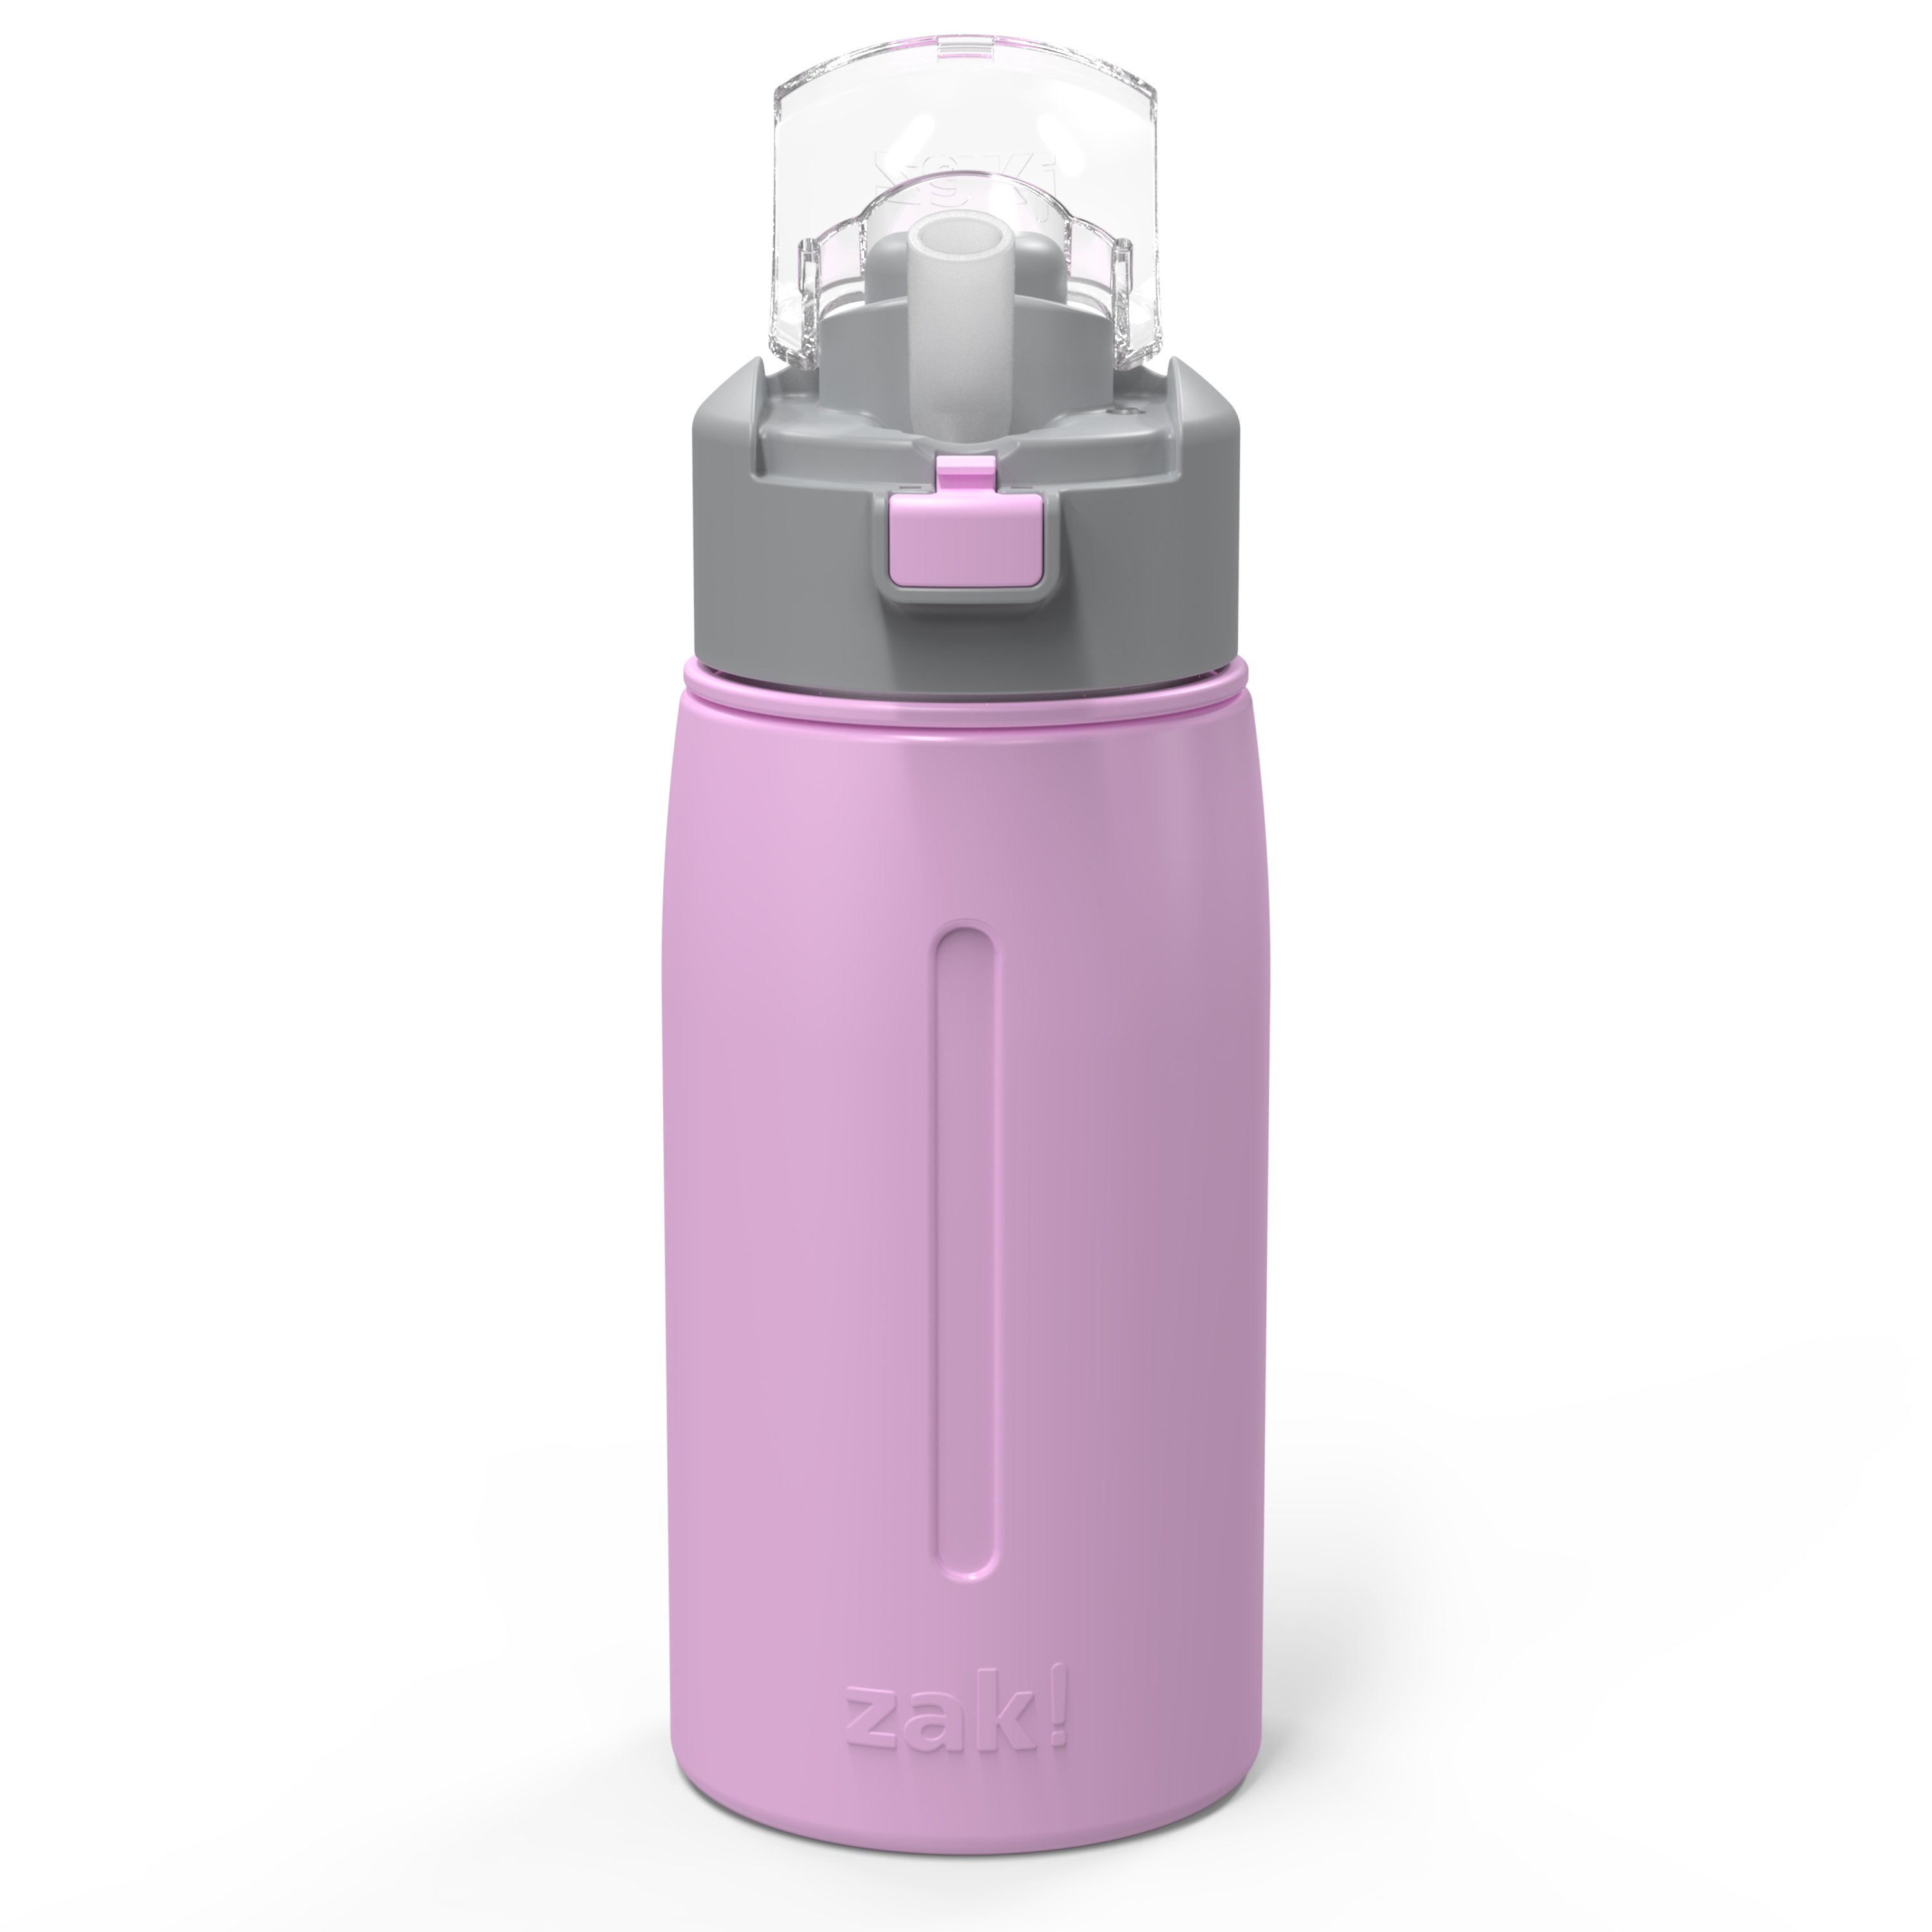 Genesis 18 ounce Vacuum Insulated Stainless Steel Tumbler, Lilac slideshow image 6